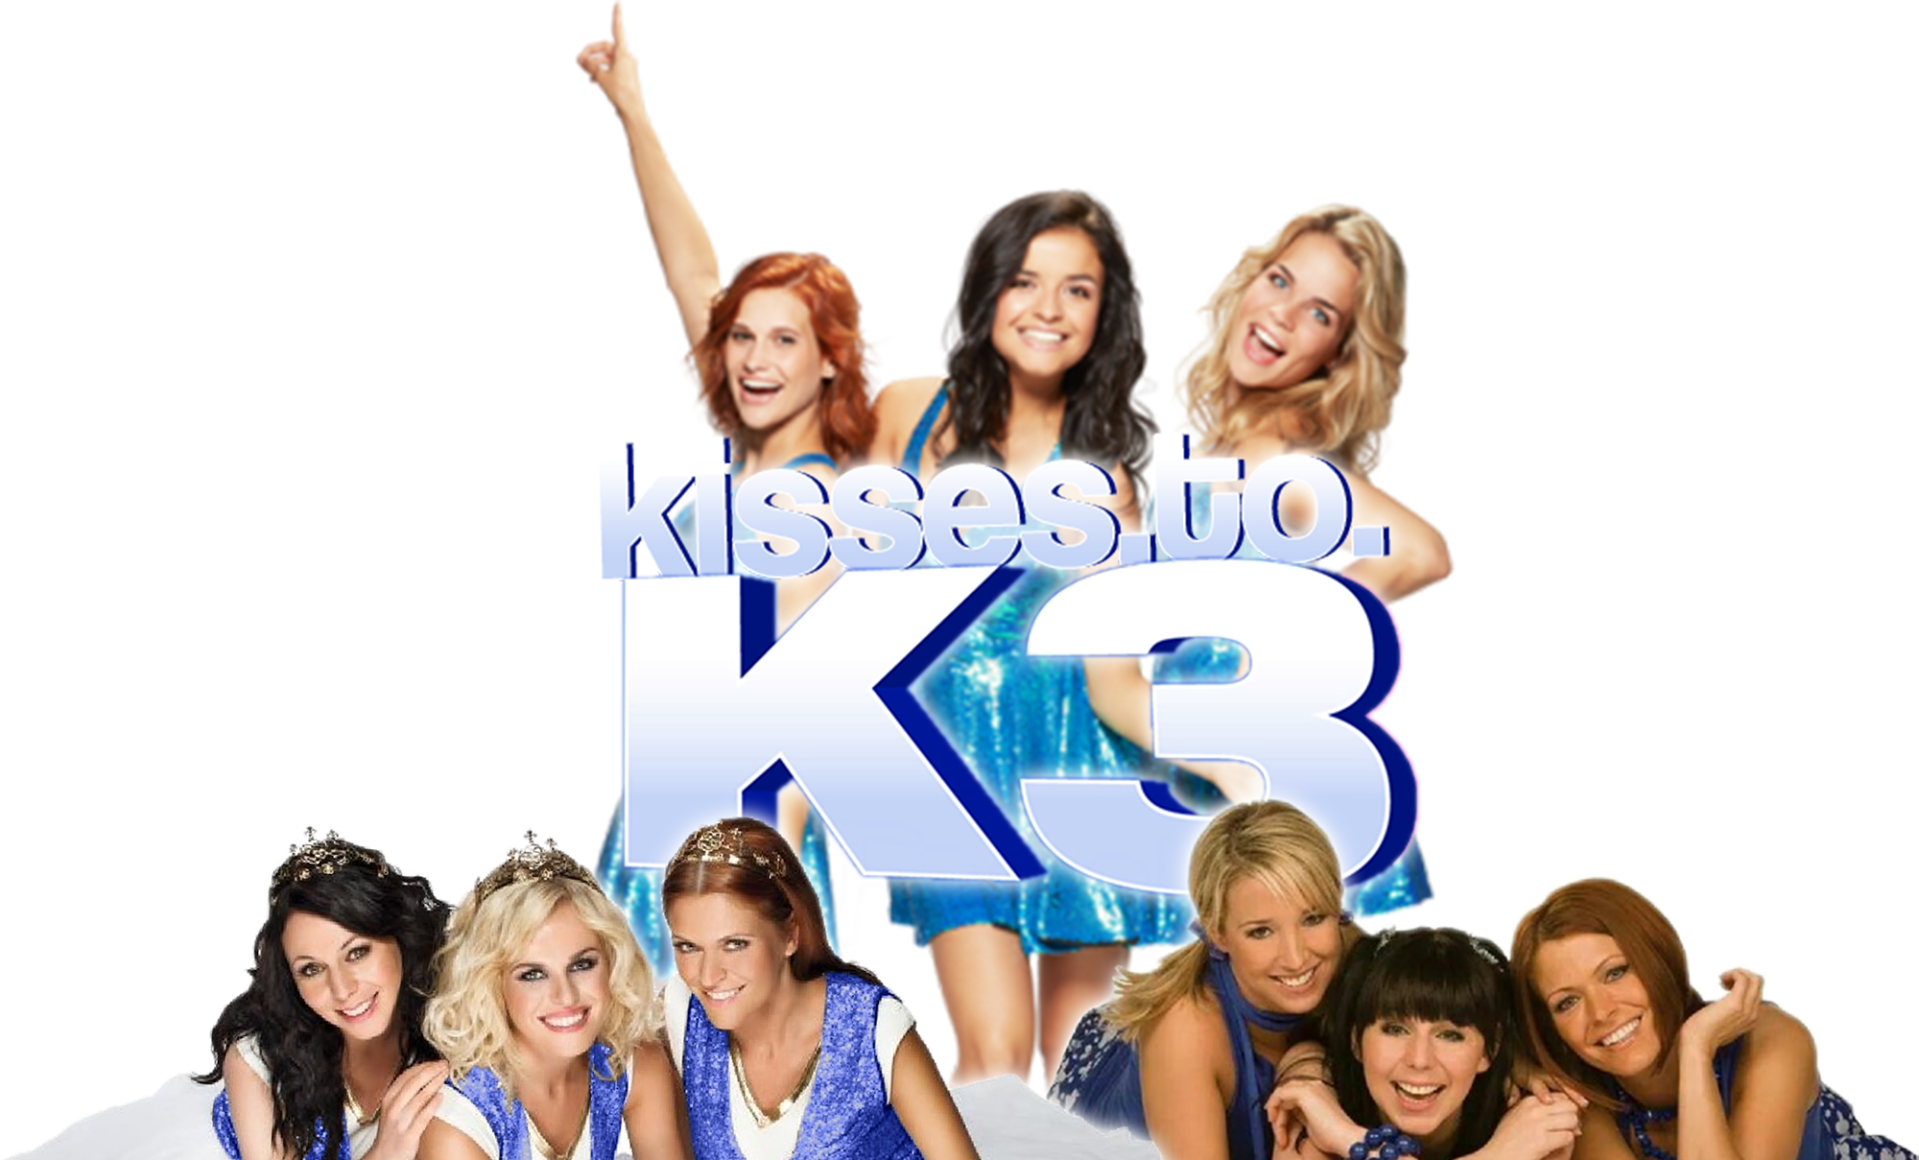 Kisses To K3 Nl